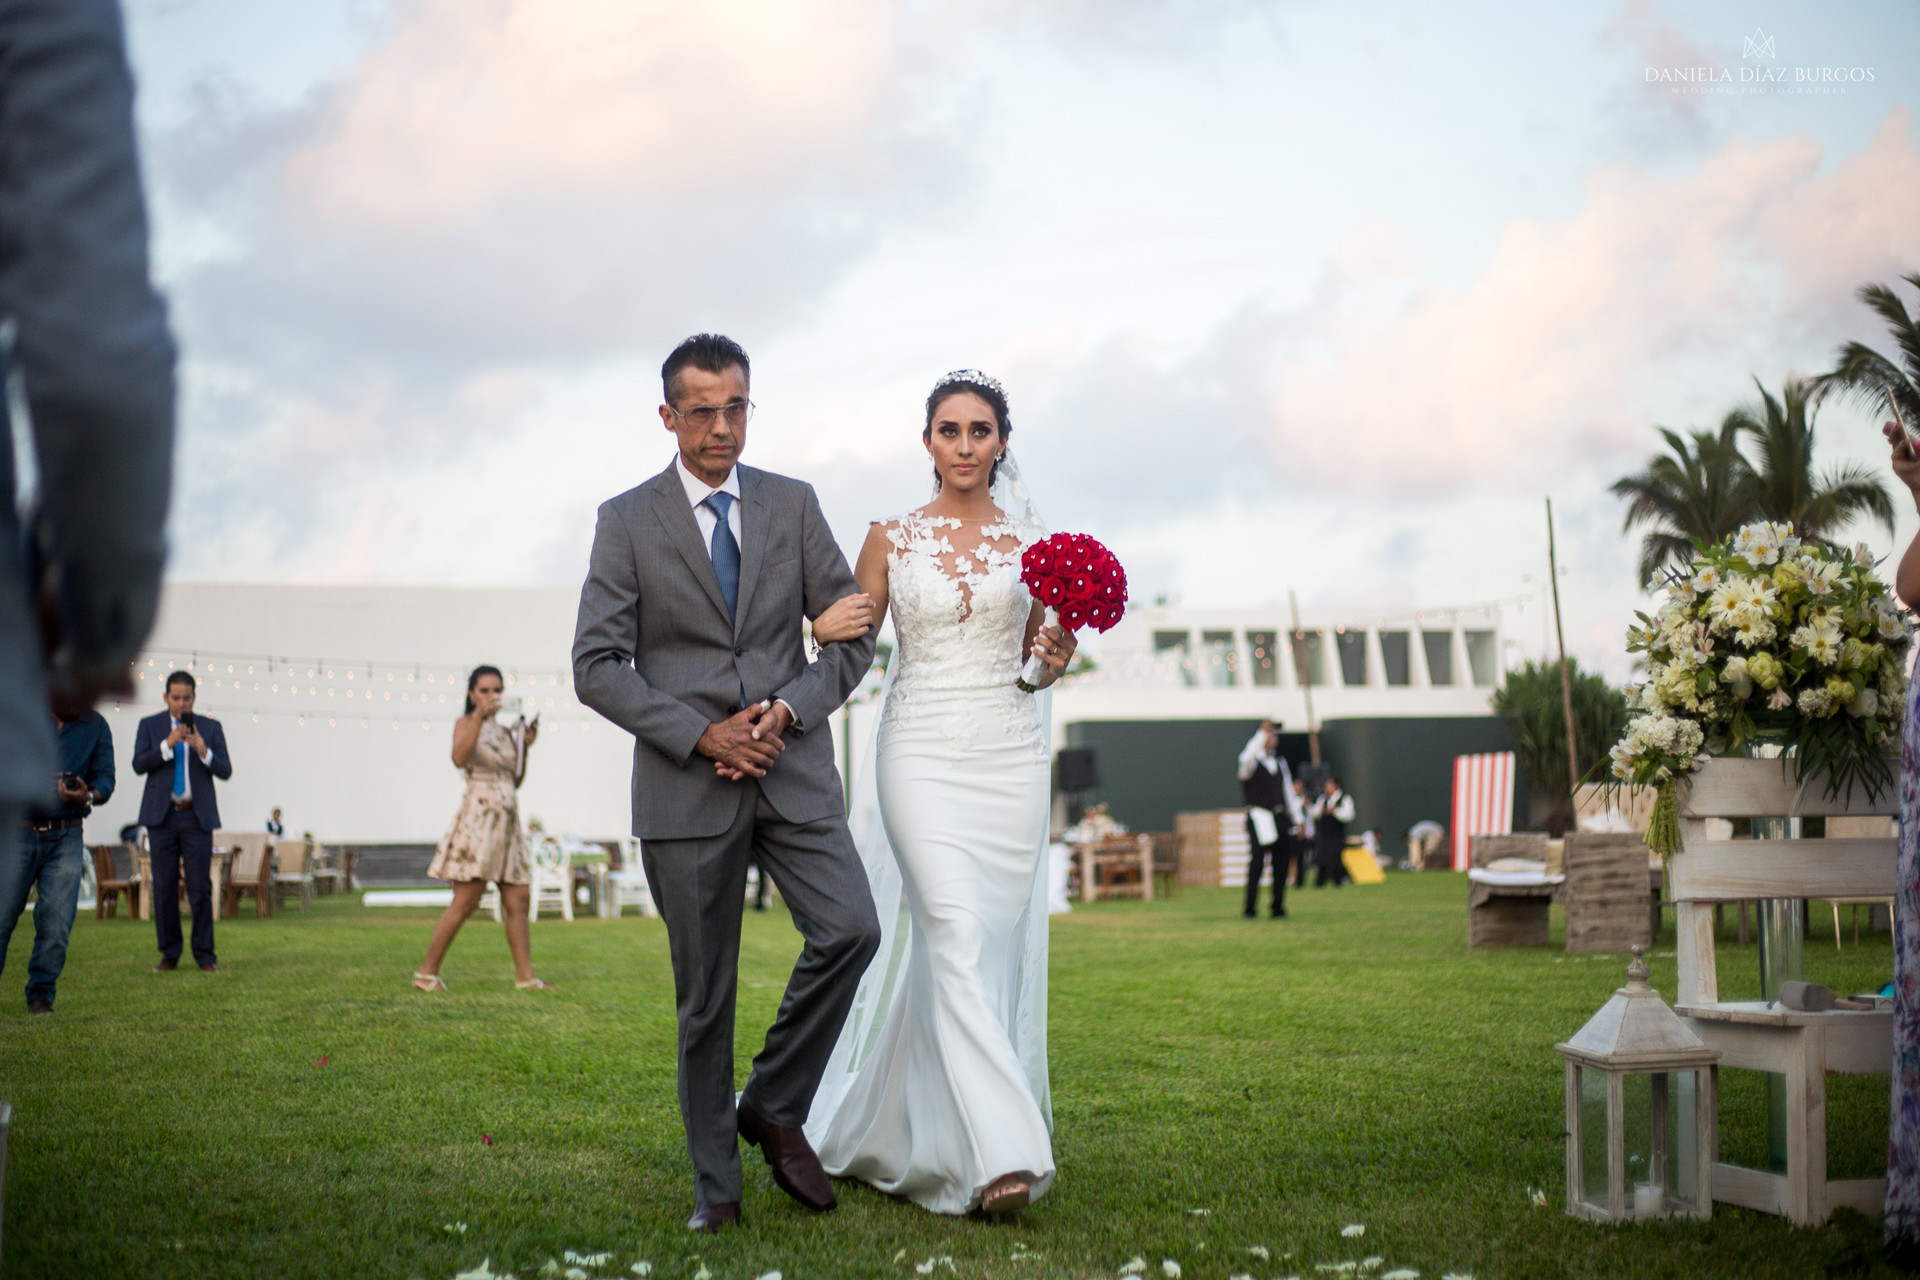 Zuza+Sergio-Wedding-LD-155.jpg